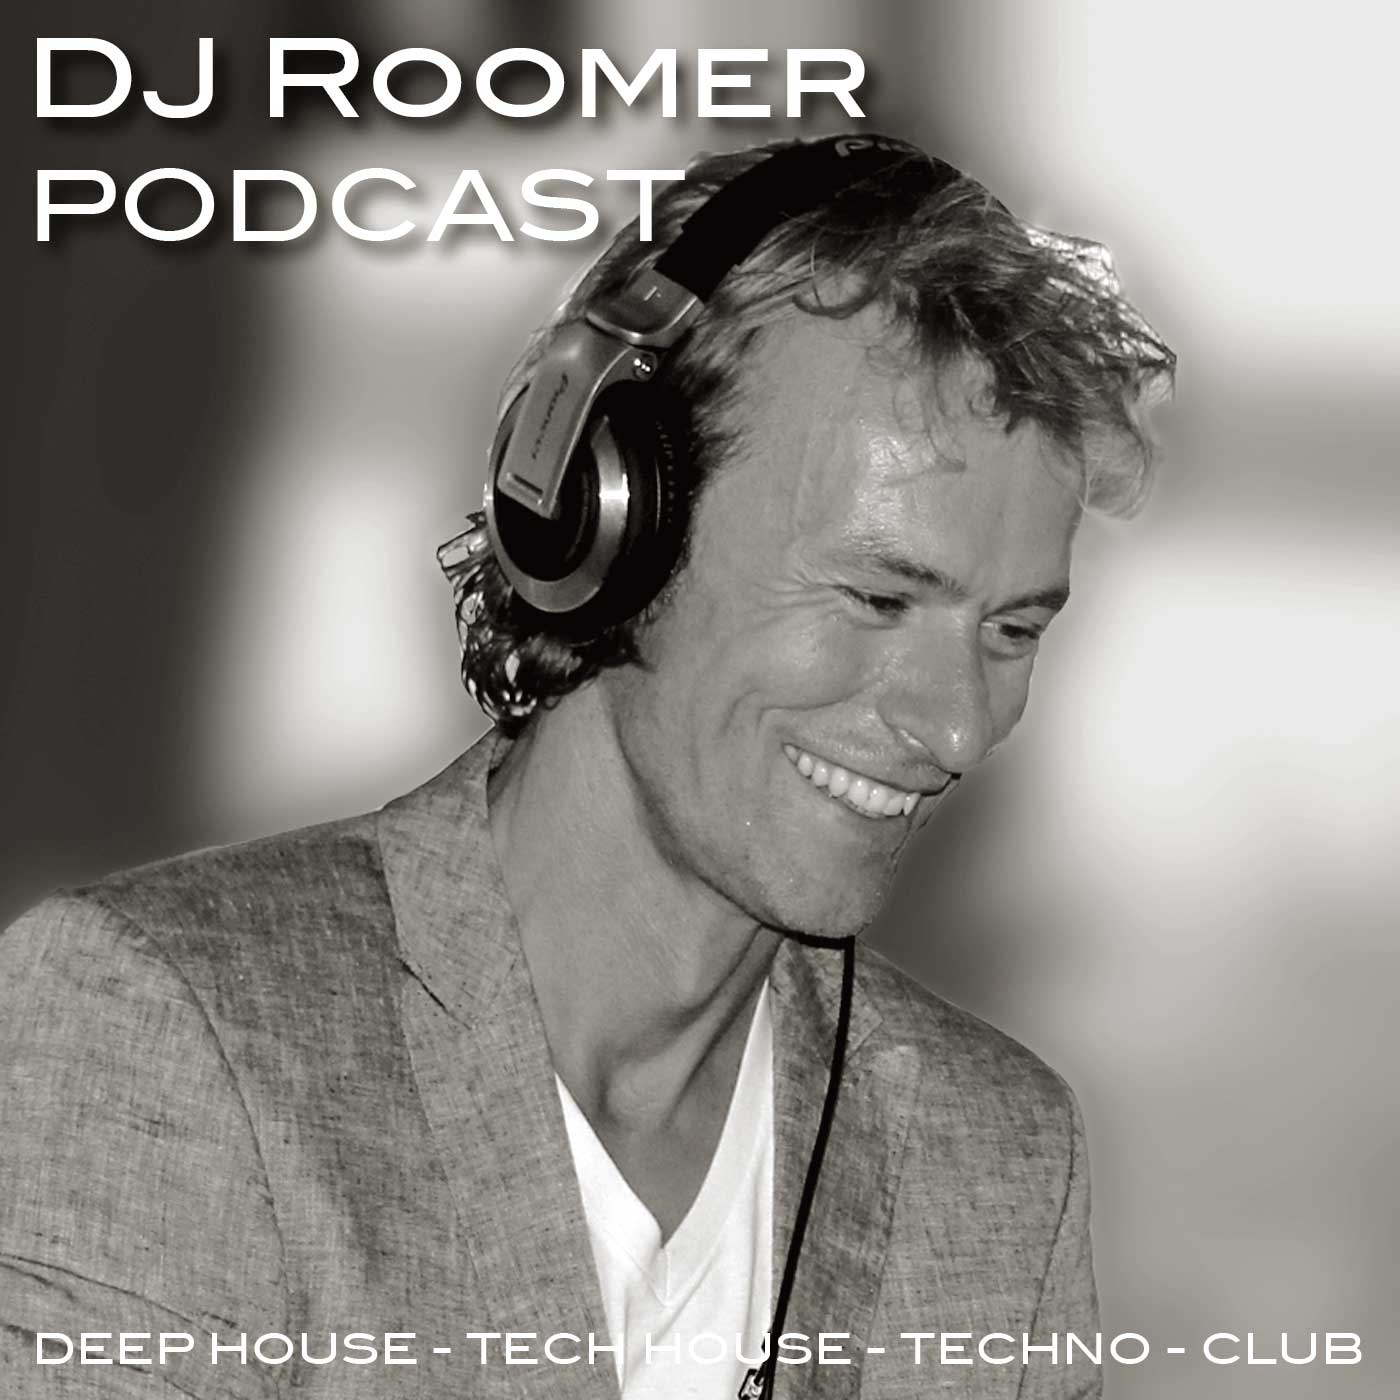 DJ Roomer's Deep House and Tech House podcast